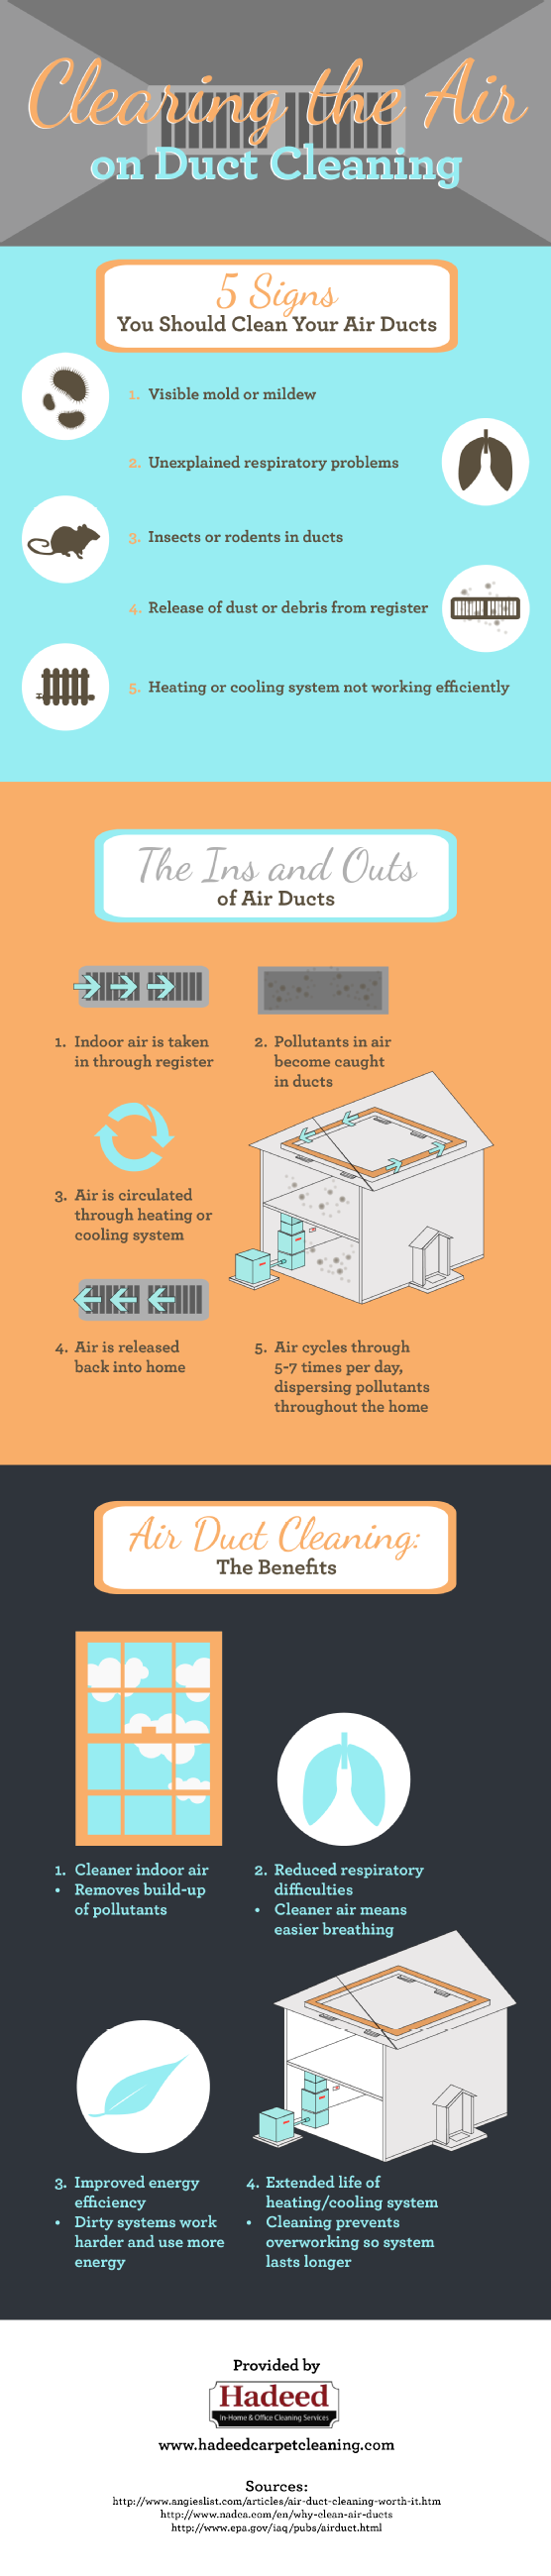 clearing-the-air-on-duct-cleaning_52316c1fececd.PNG